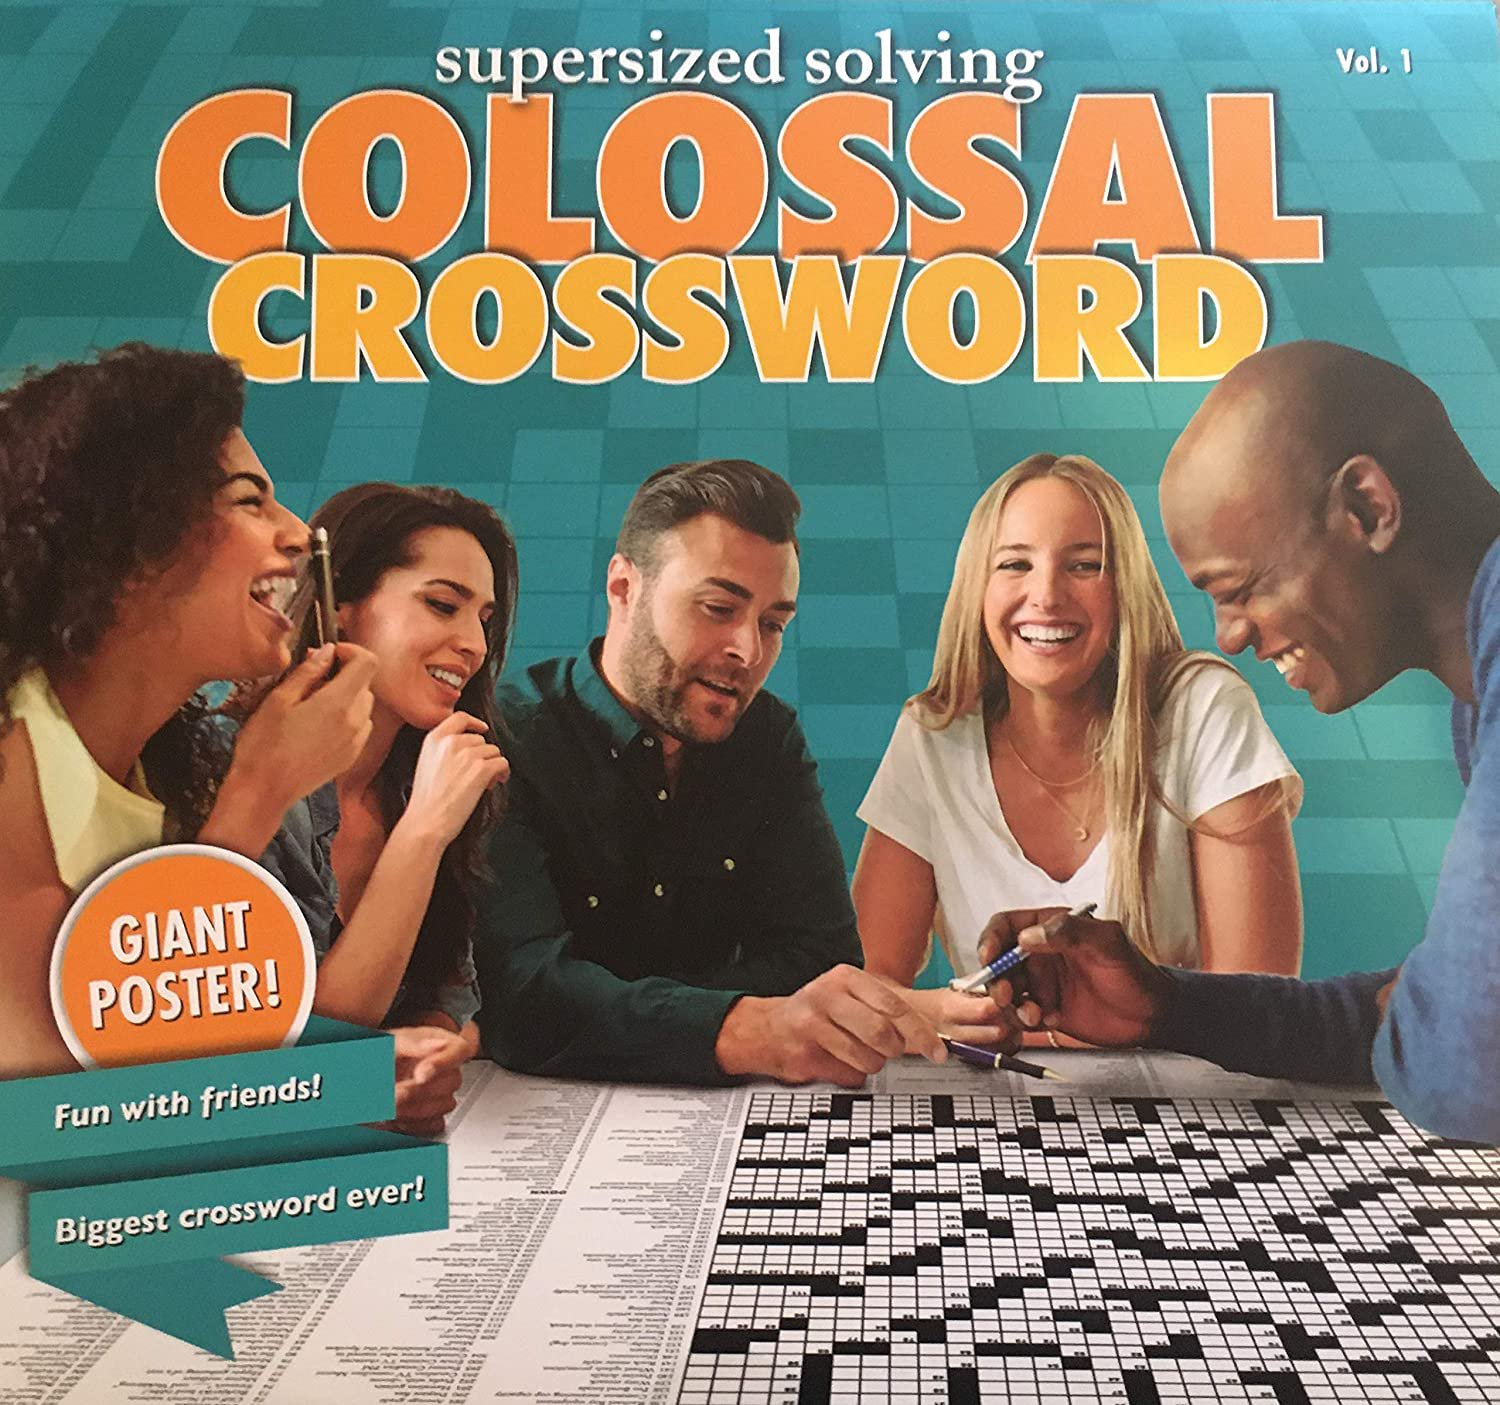 Supersized Solving Colossal Crossword Puzzle Giant Poster, Volume 1 - Over 3ft Wide!